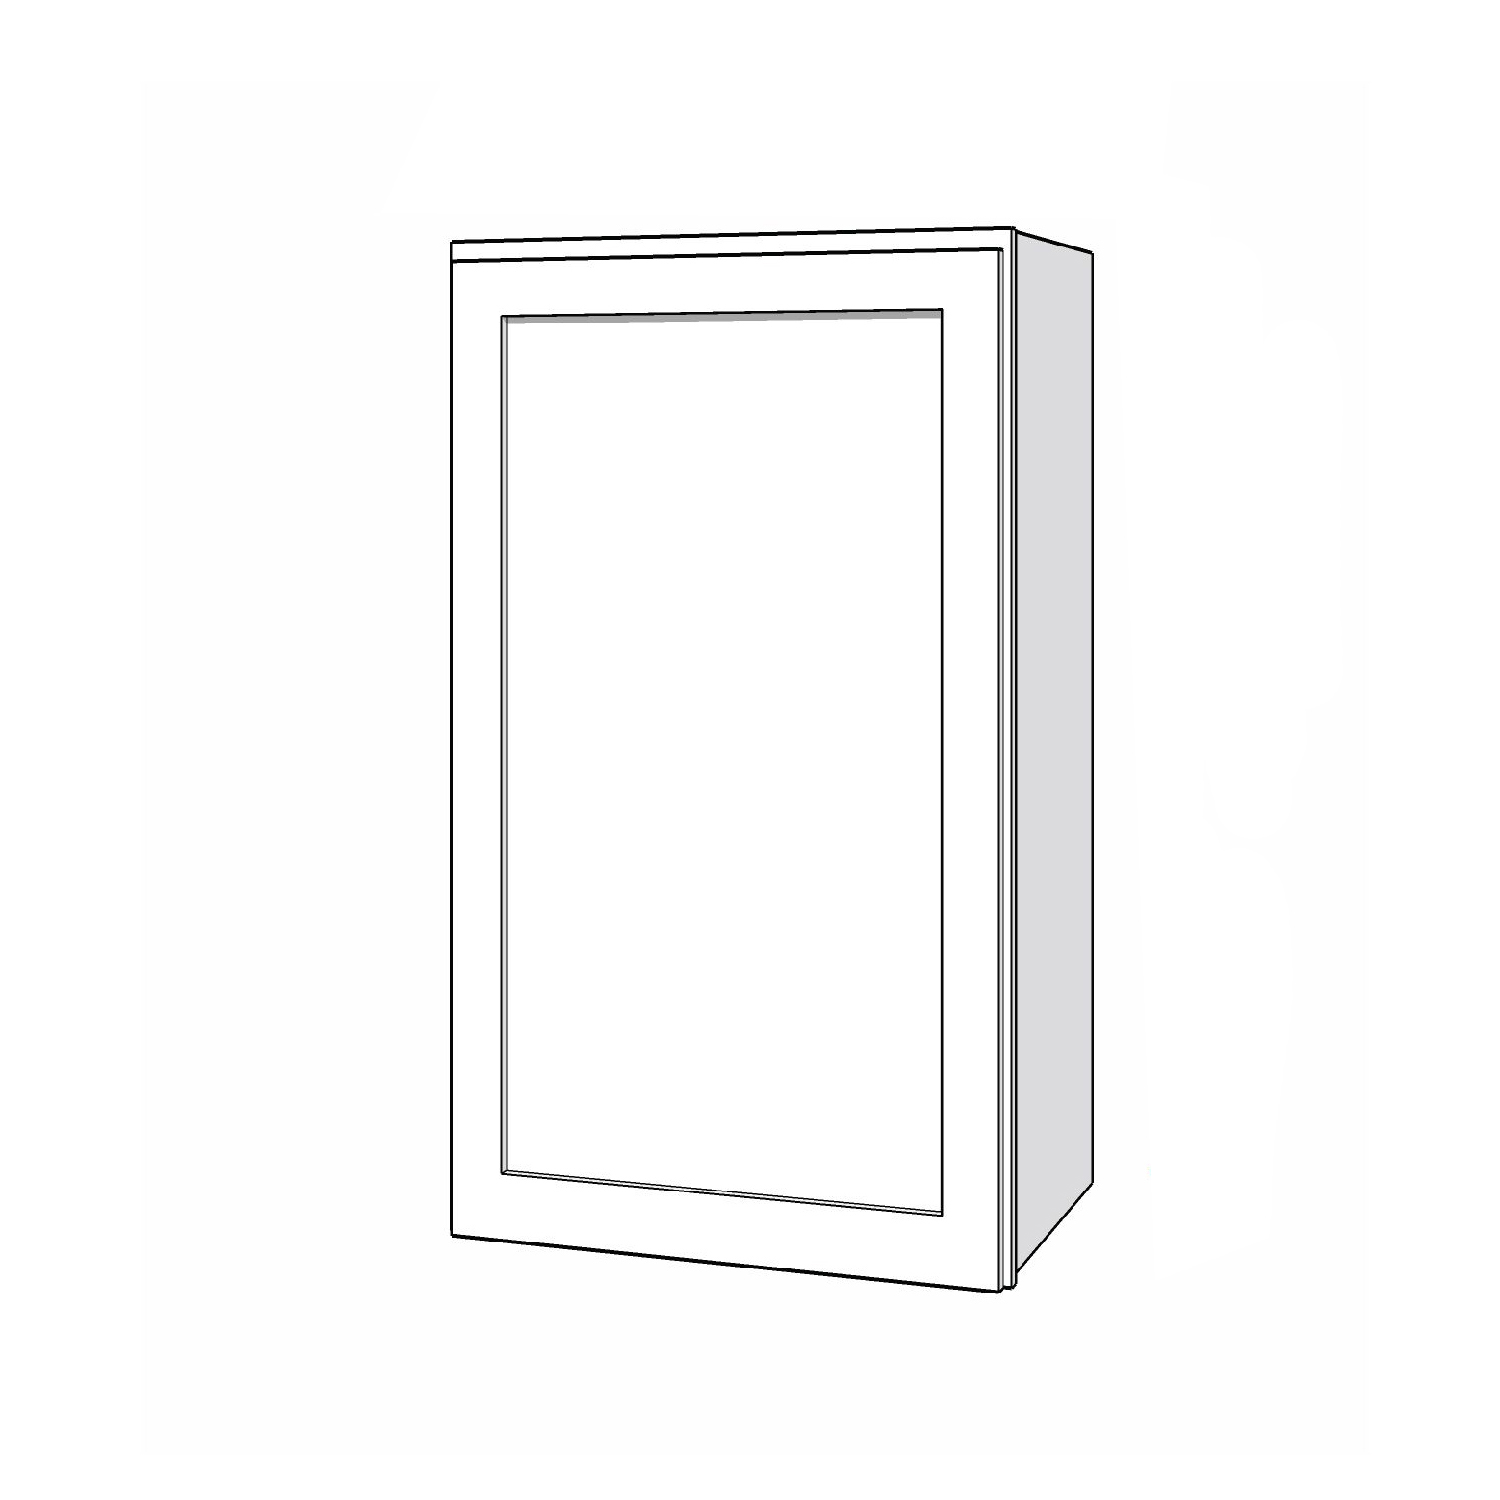 Wall Cabinet - 21in. x 36in. - White